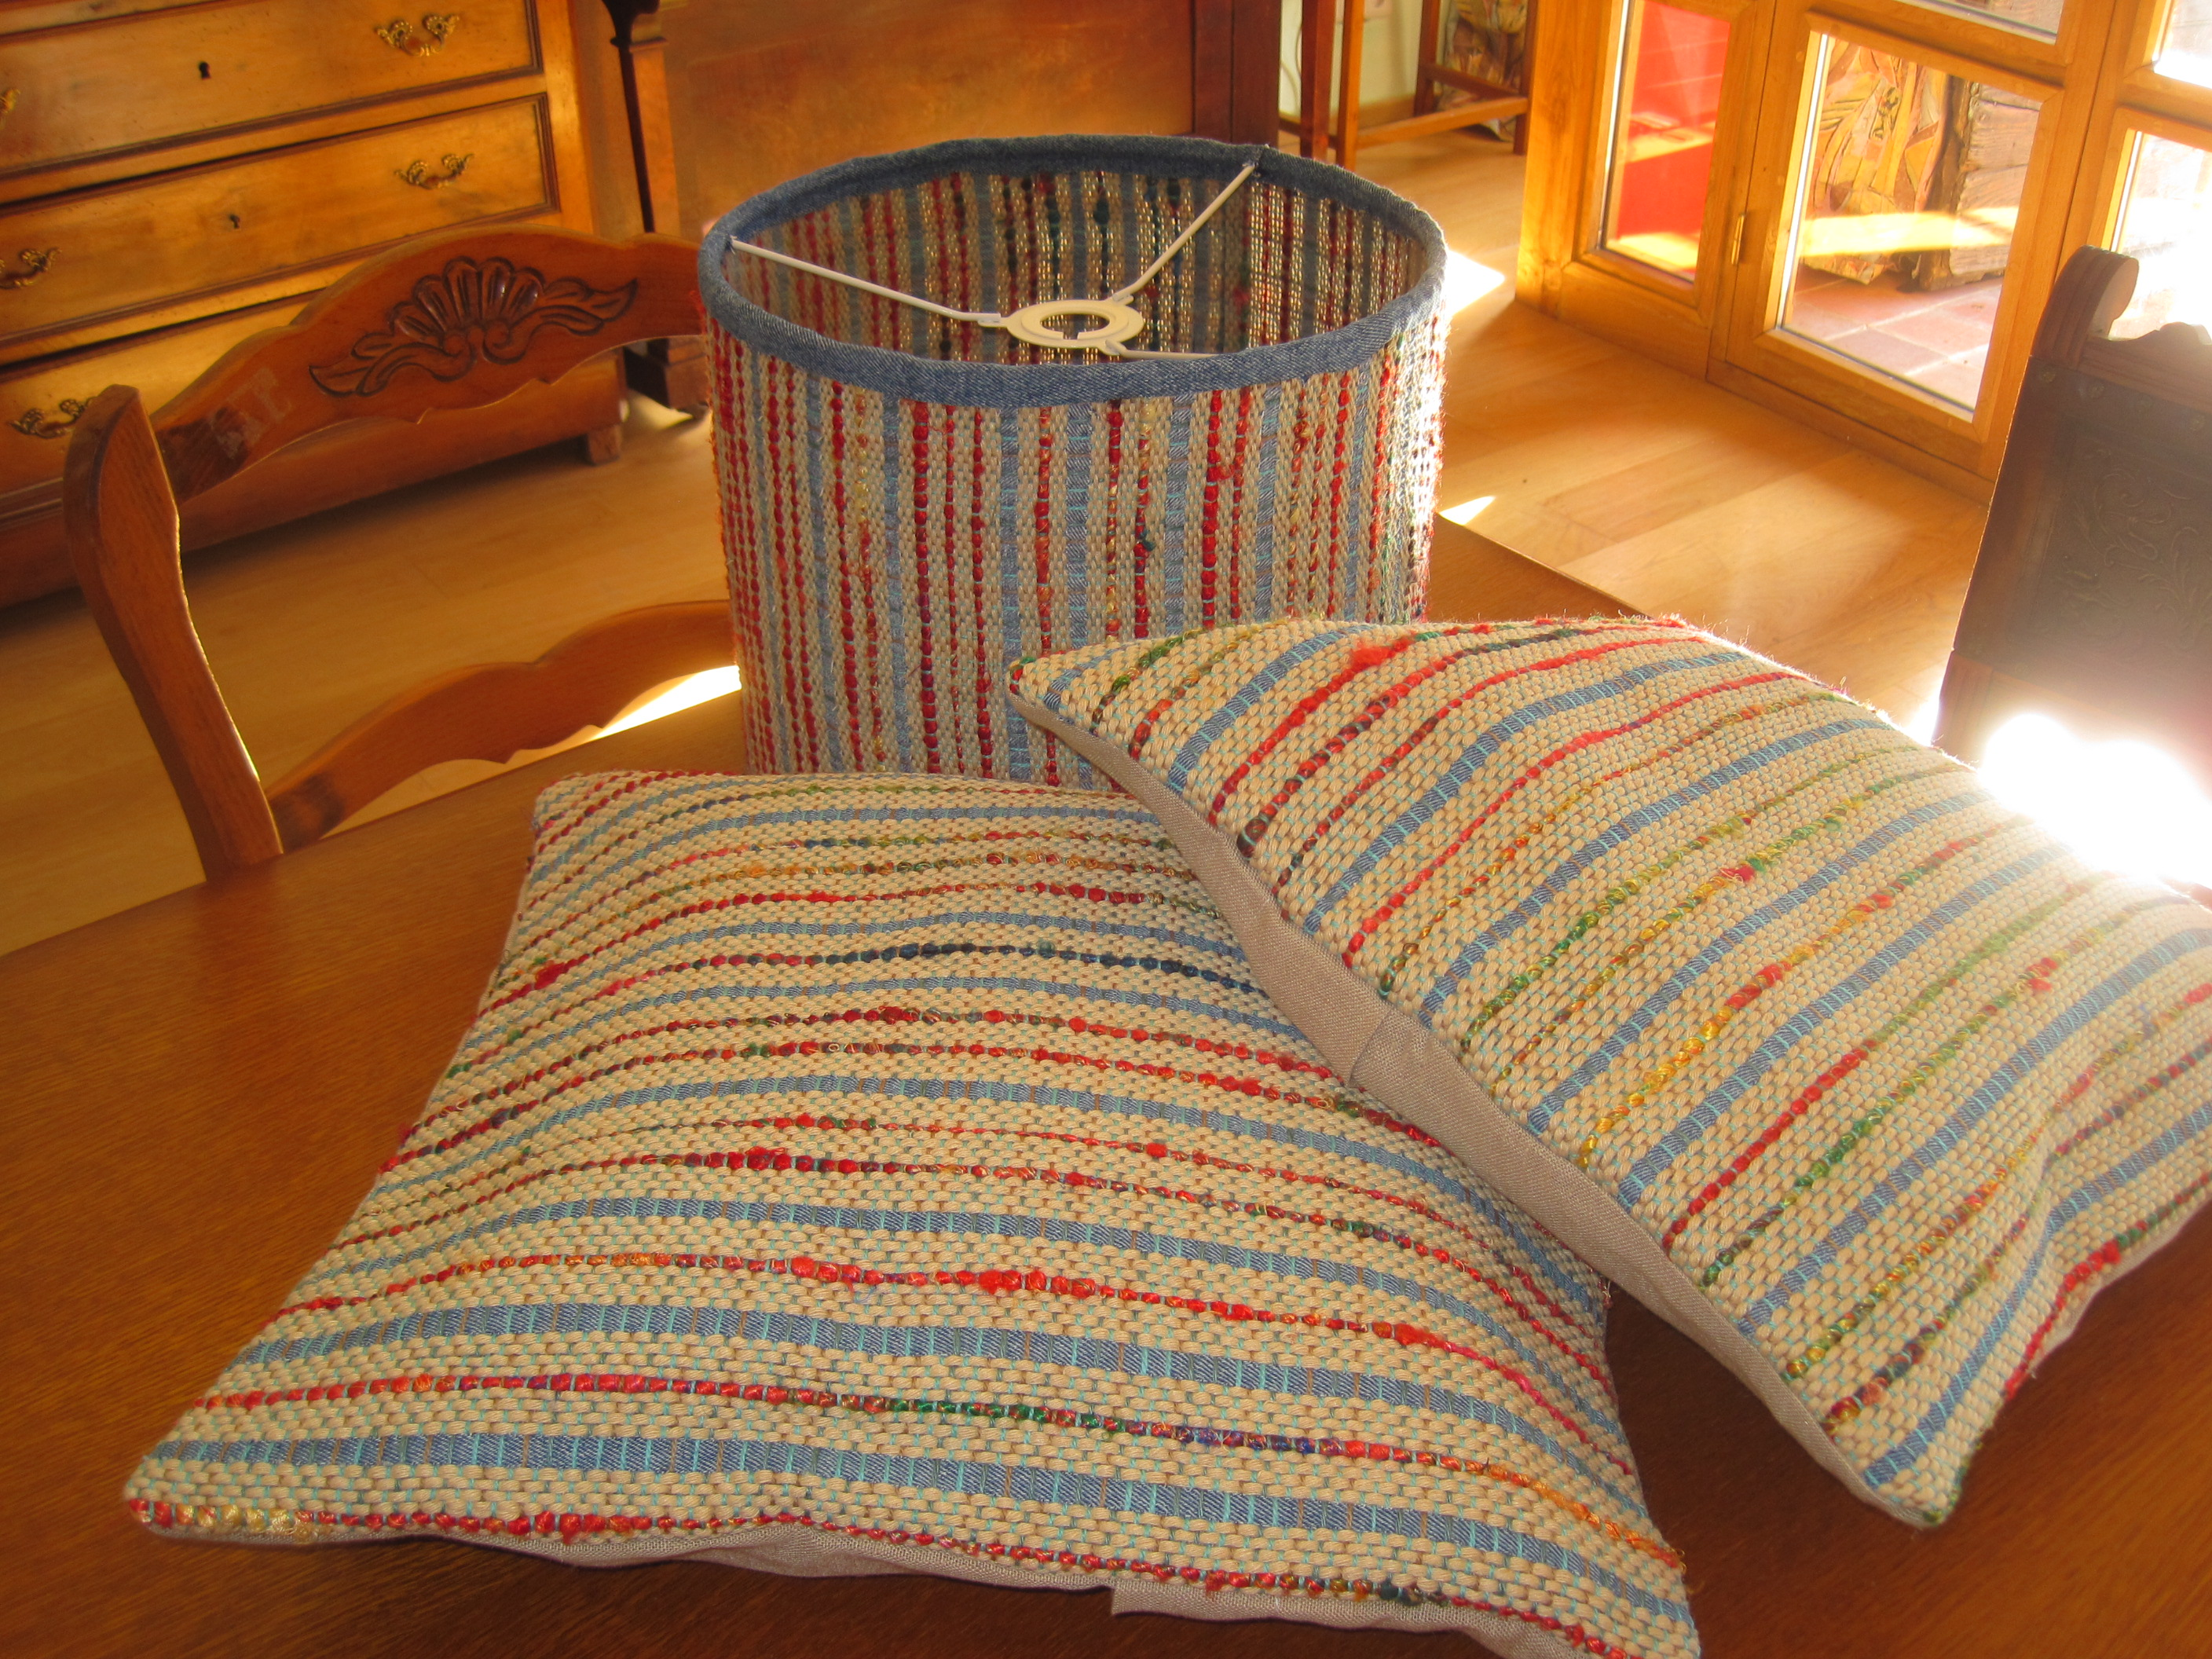 2 cushion covers with matching lampshade